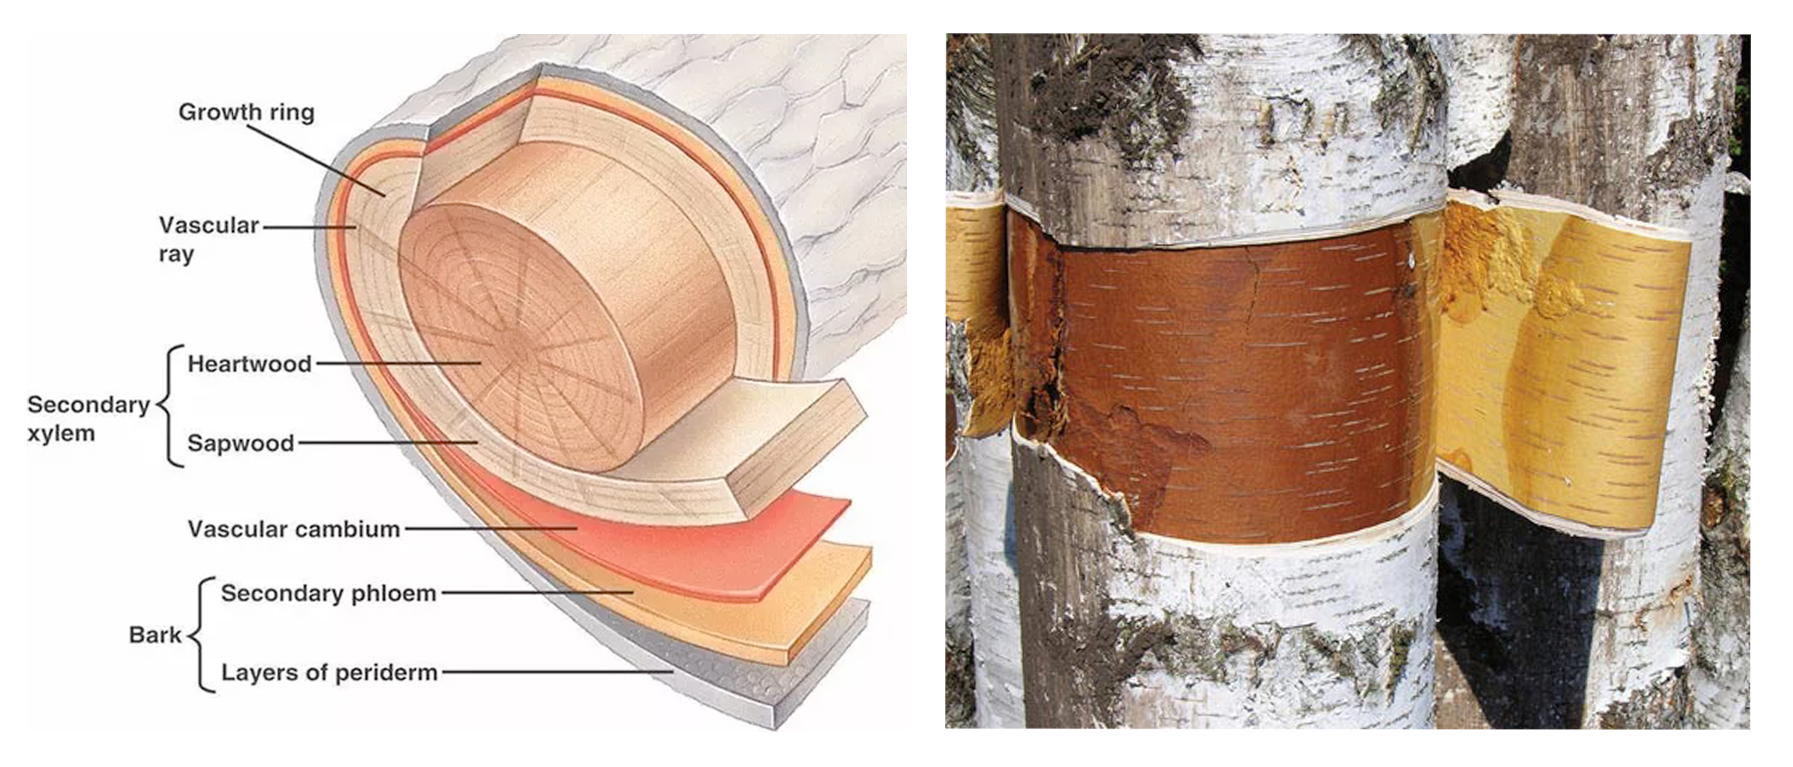 Diagram showing the Birch bark Layers